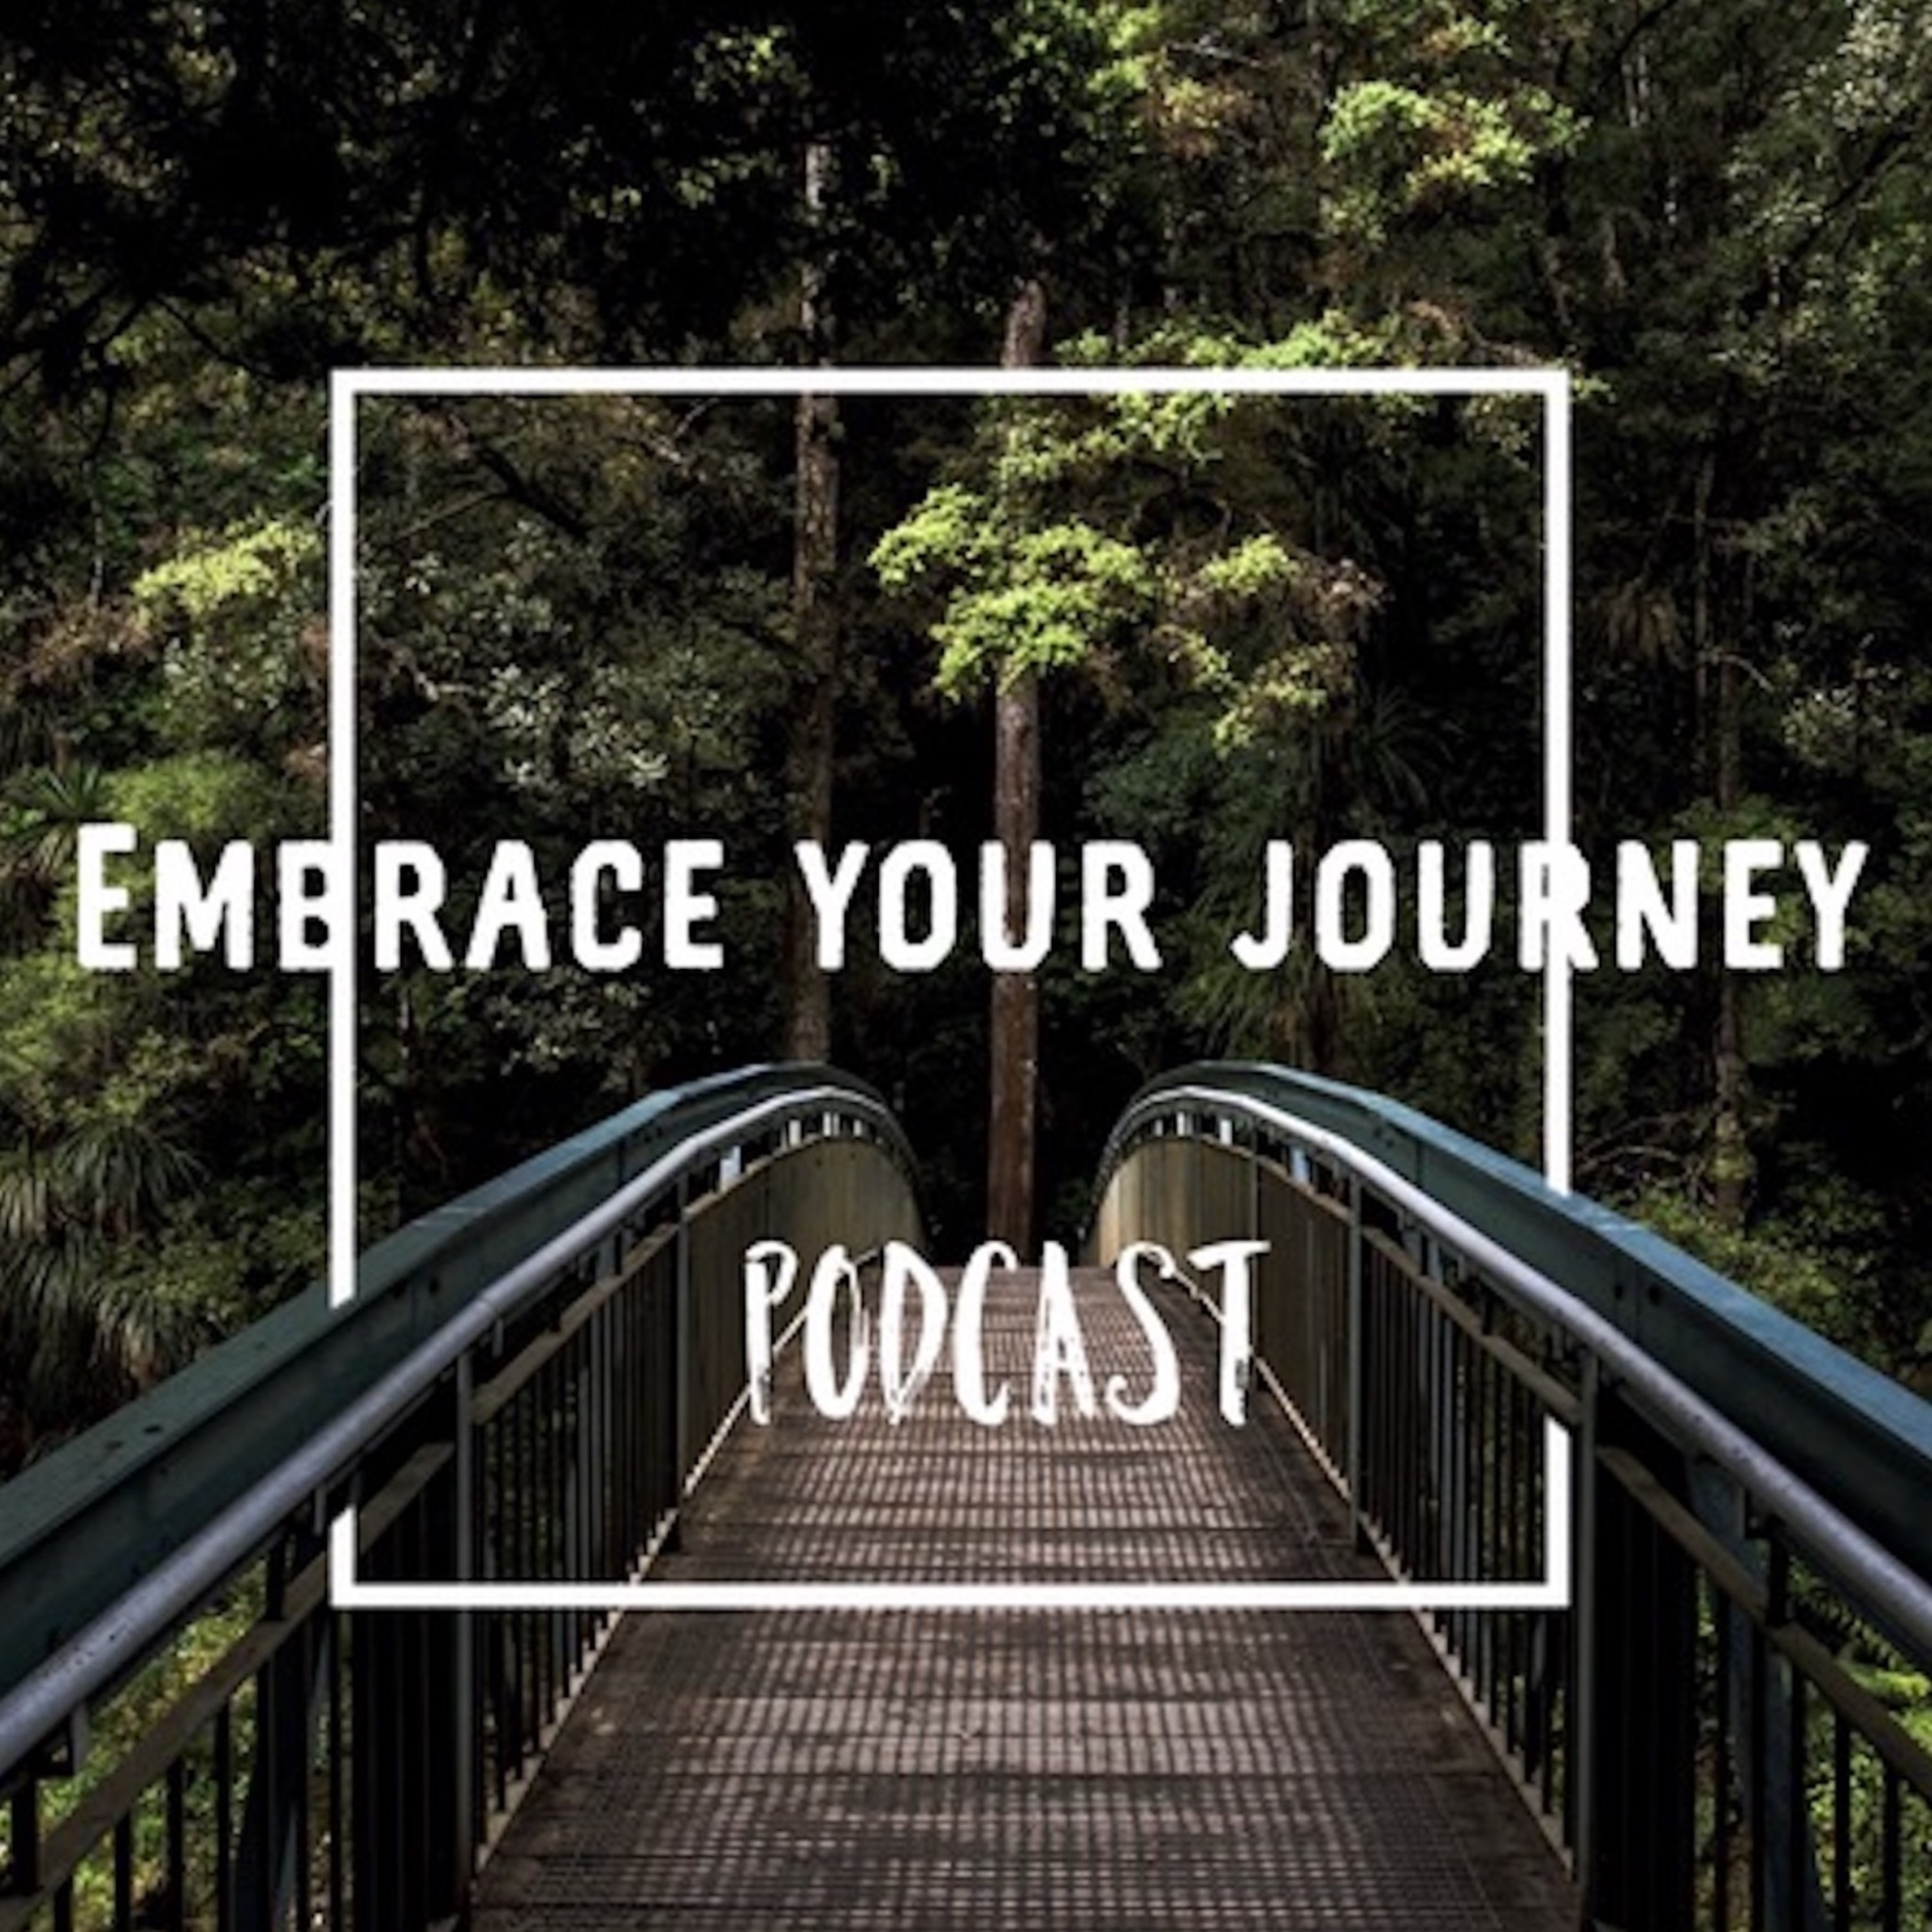 Intro to Embrace Your Journey Podcast